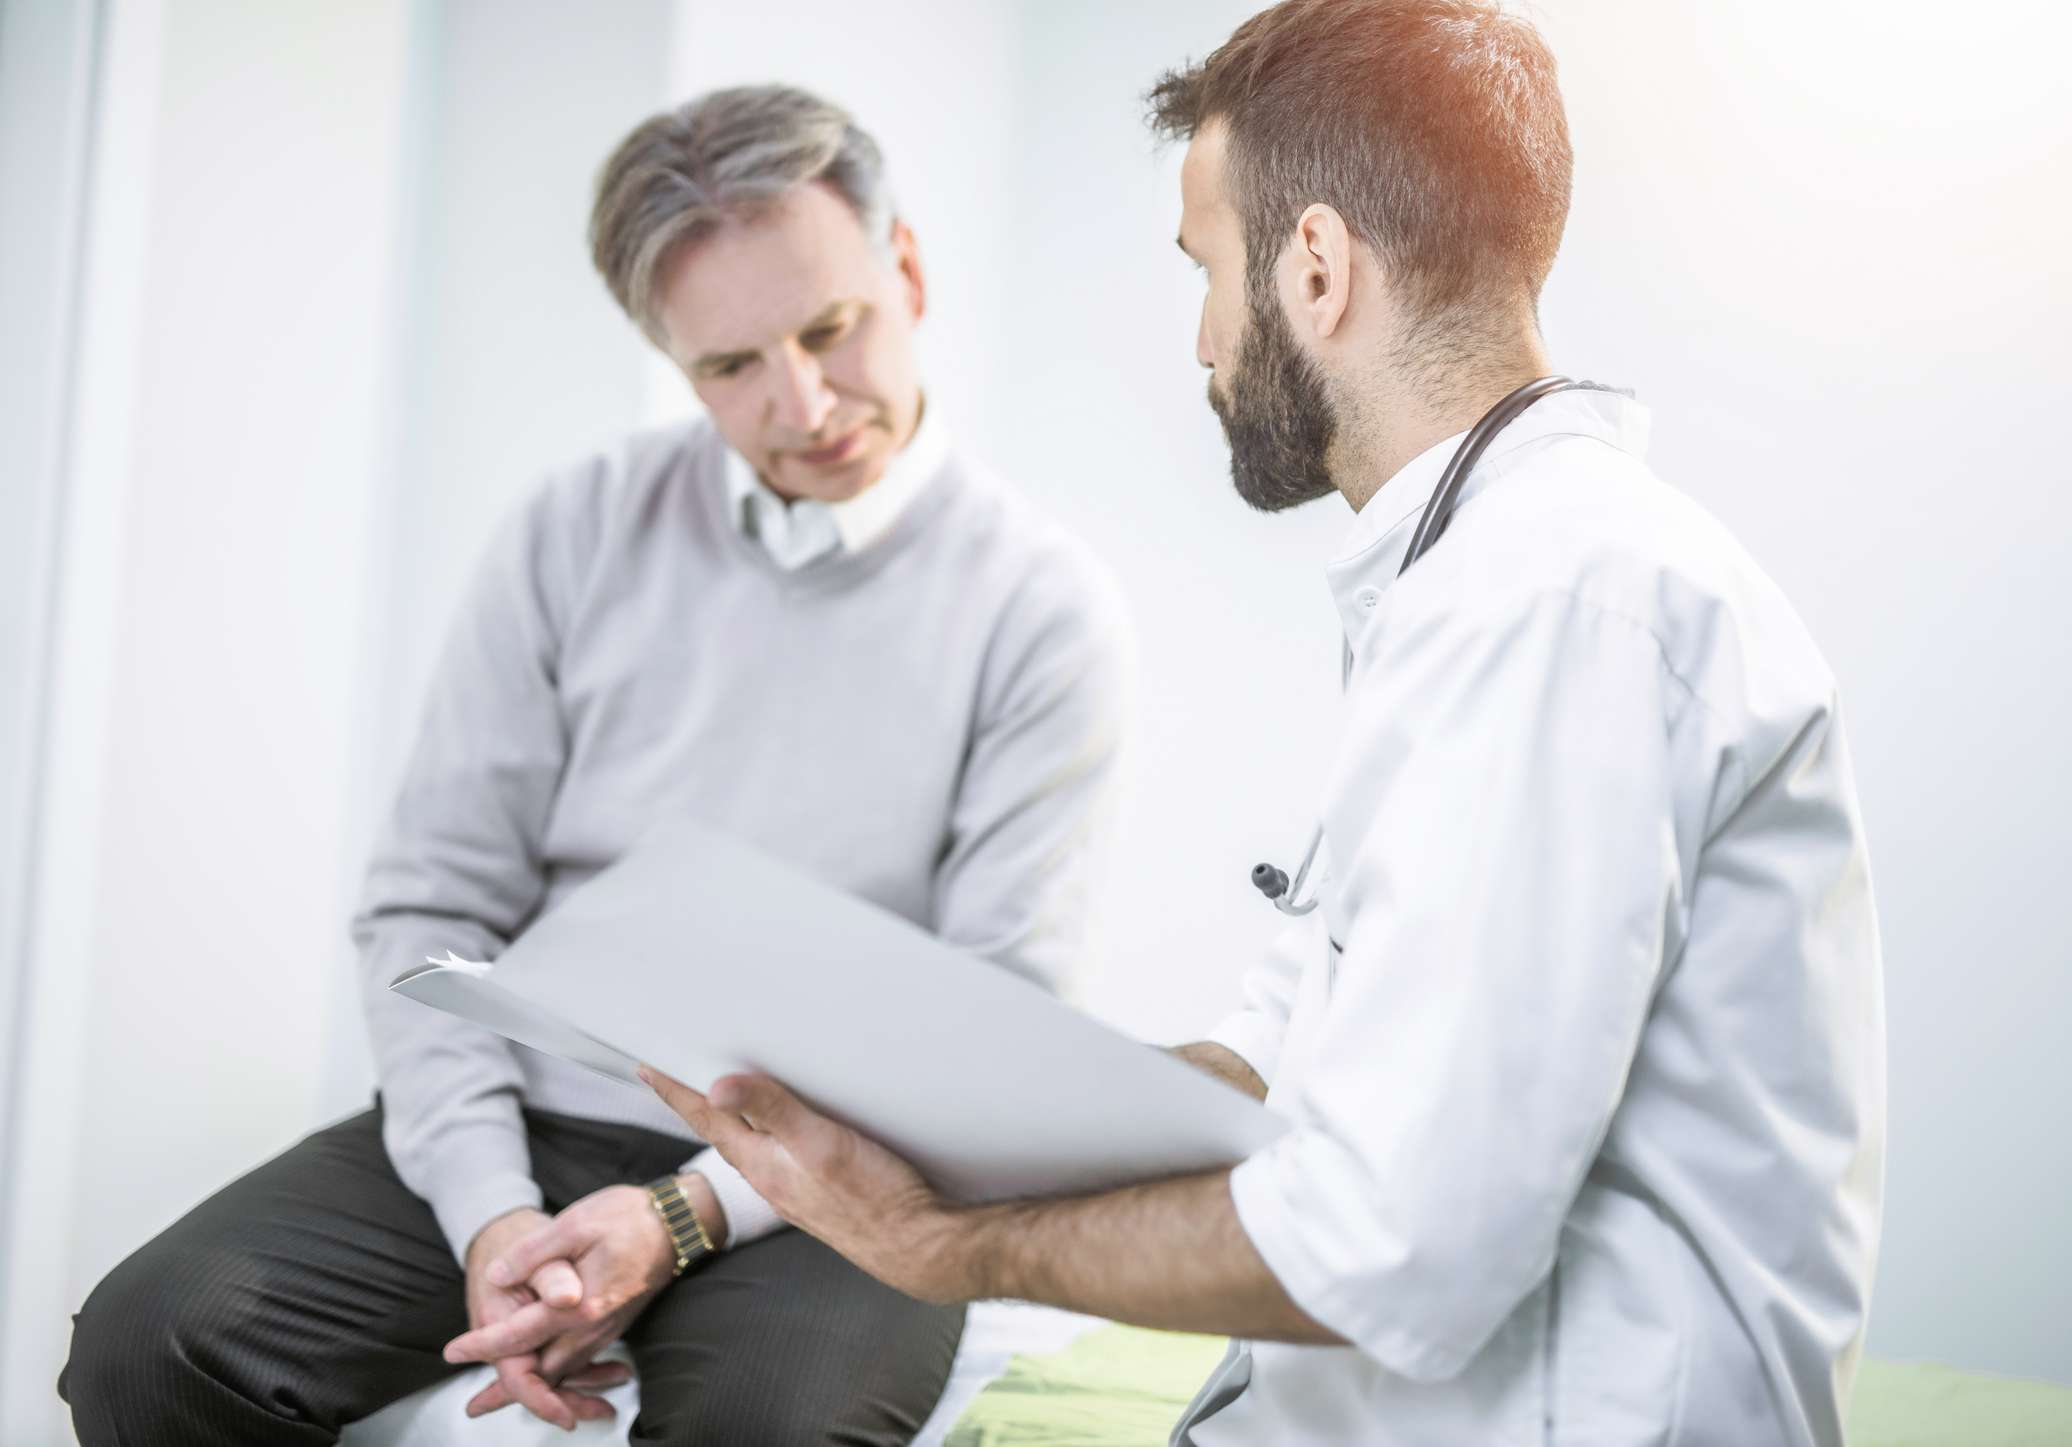 Man looking at a medical chart and talking with his doctor